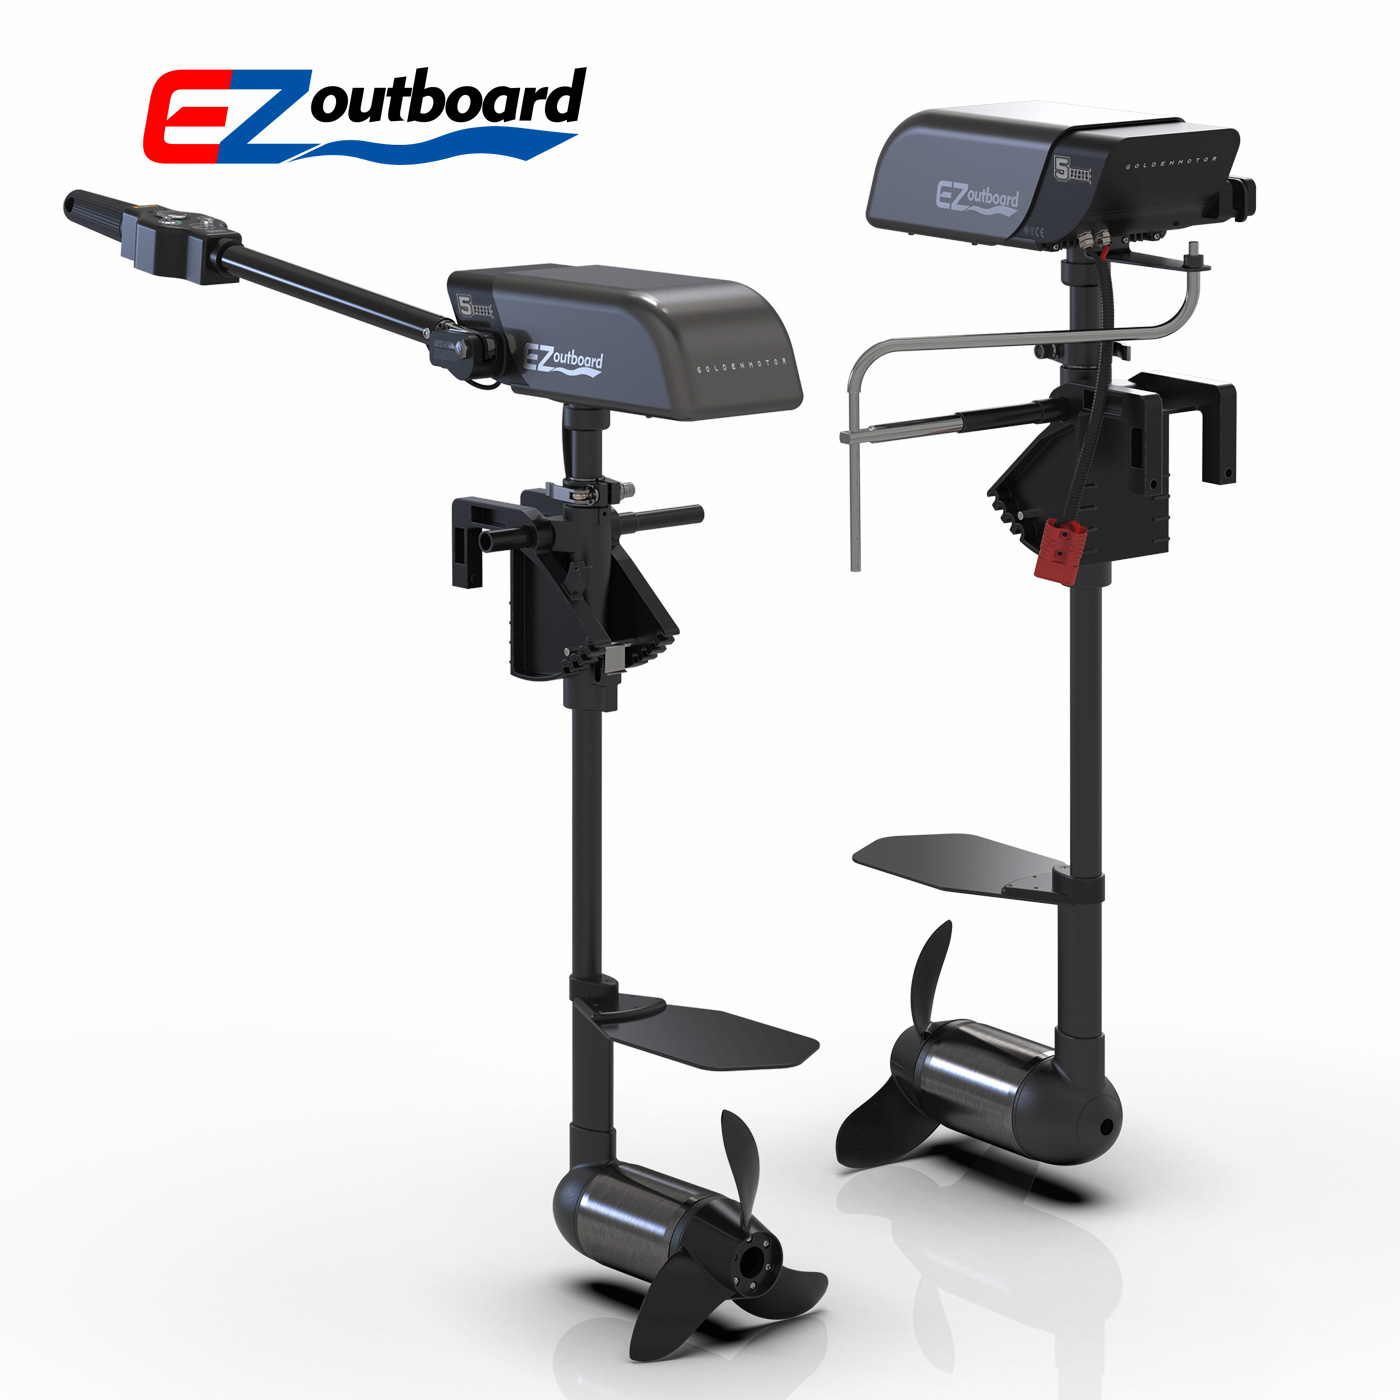 GoldenMotor EZoutboard Ultralight Incredible Thrust electric outboard boat motor with CE